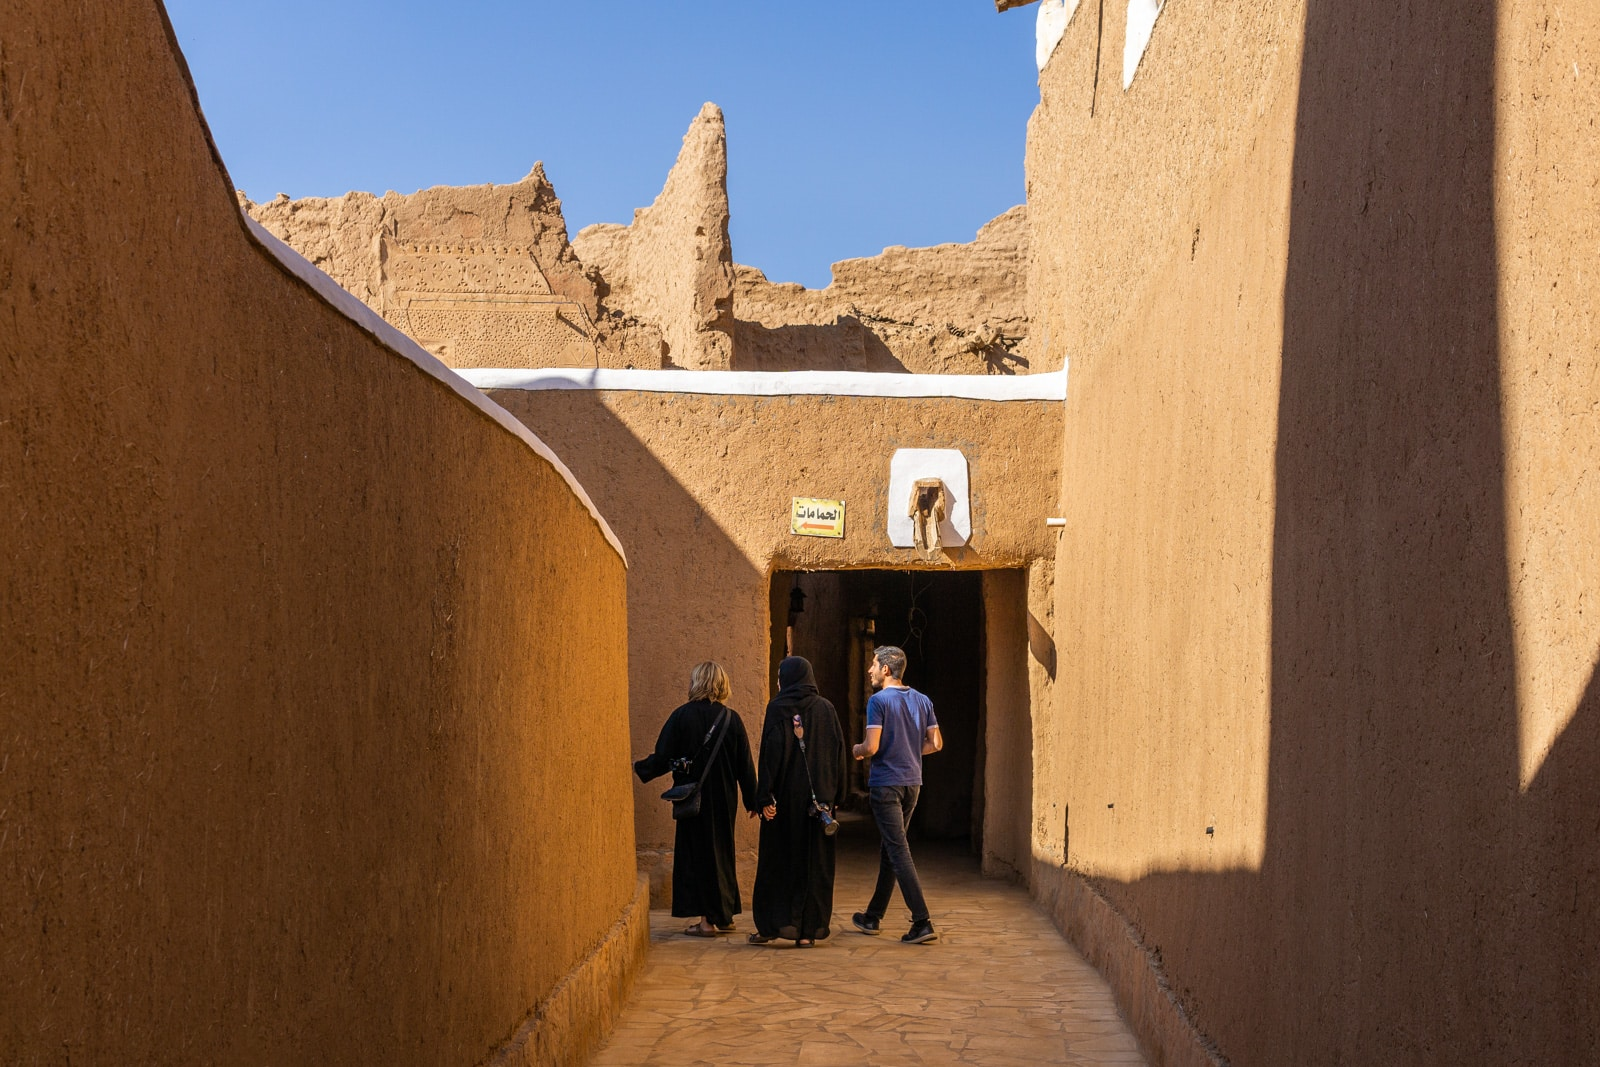 Women travelers in Saudi Arabia walking through Ushaiger with a male Couchsurfing host